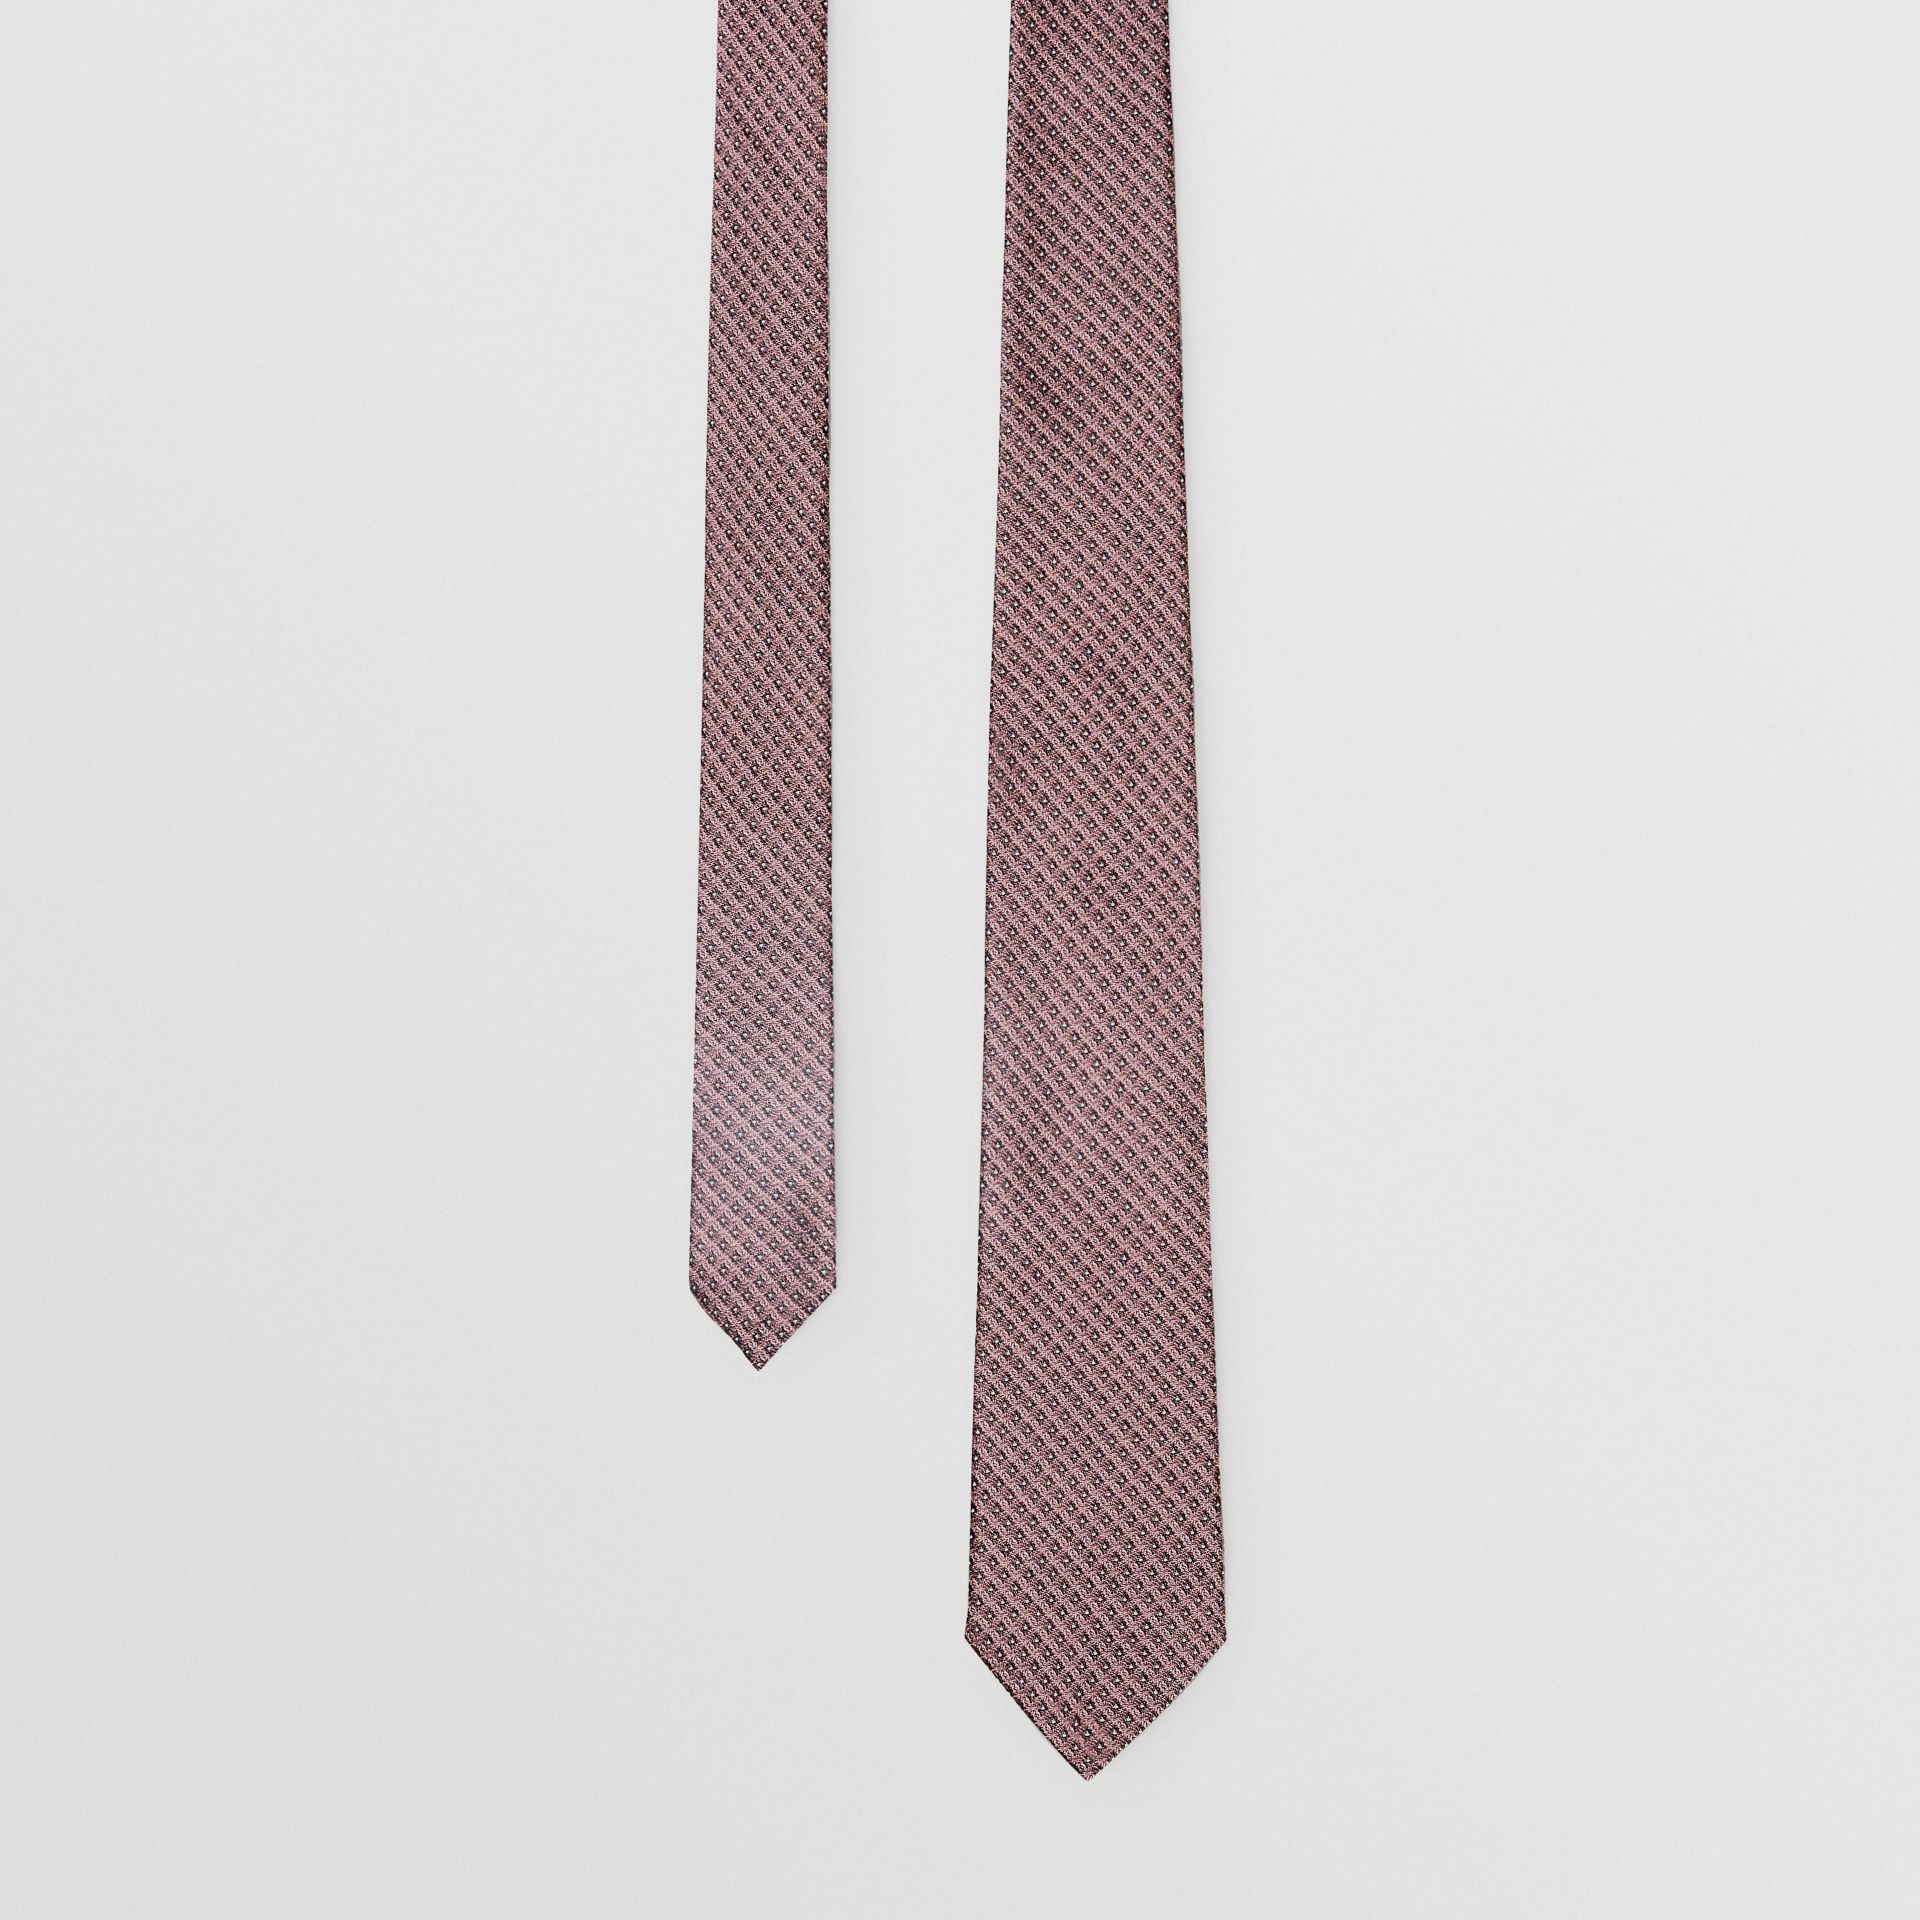 Classic Cut Micro Dot Silk Jacquard Tie in Garnet Pink - Men | Burberry United States - gallery image 0